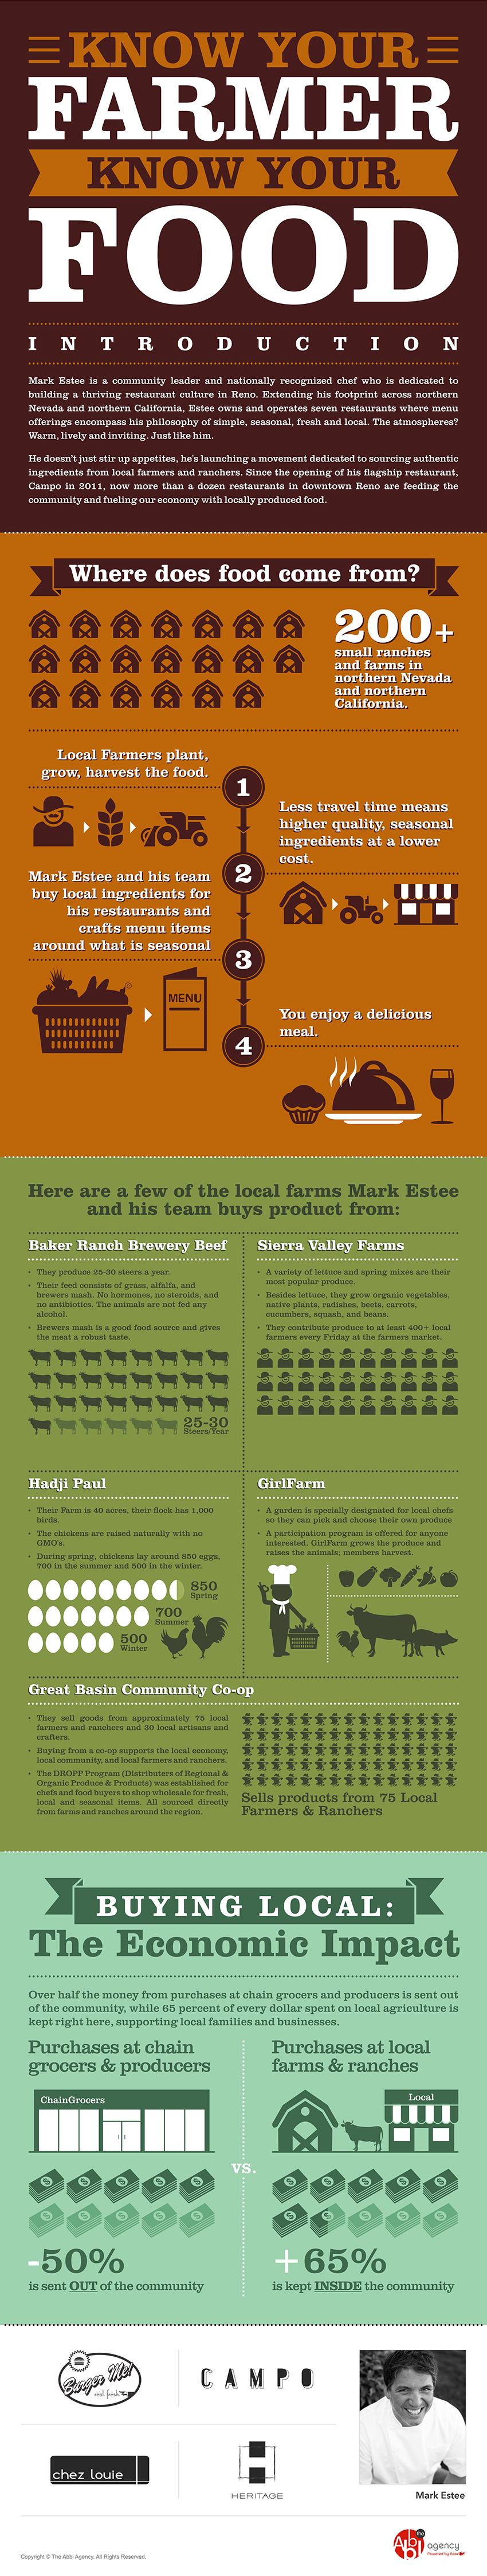 CAMPO-KnowYourFarmer-Infographic